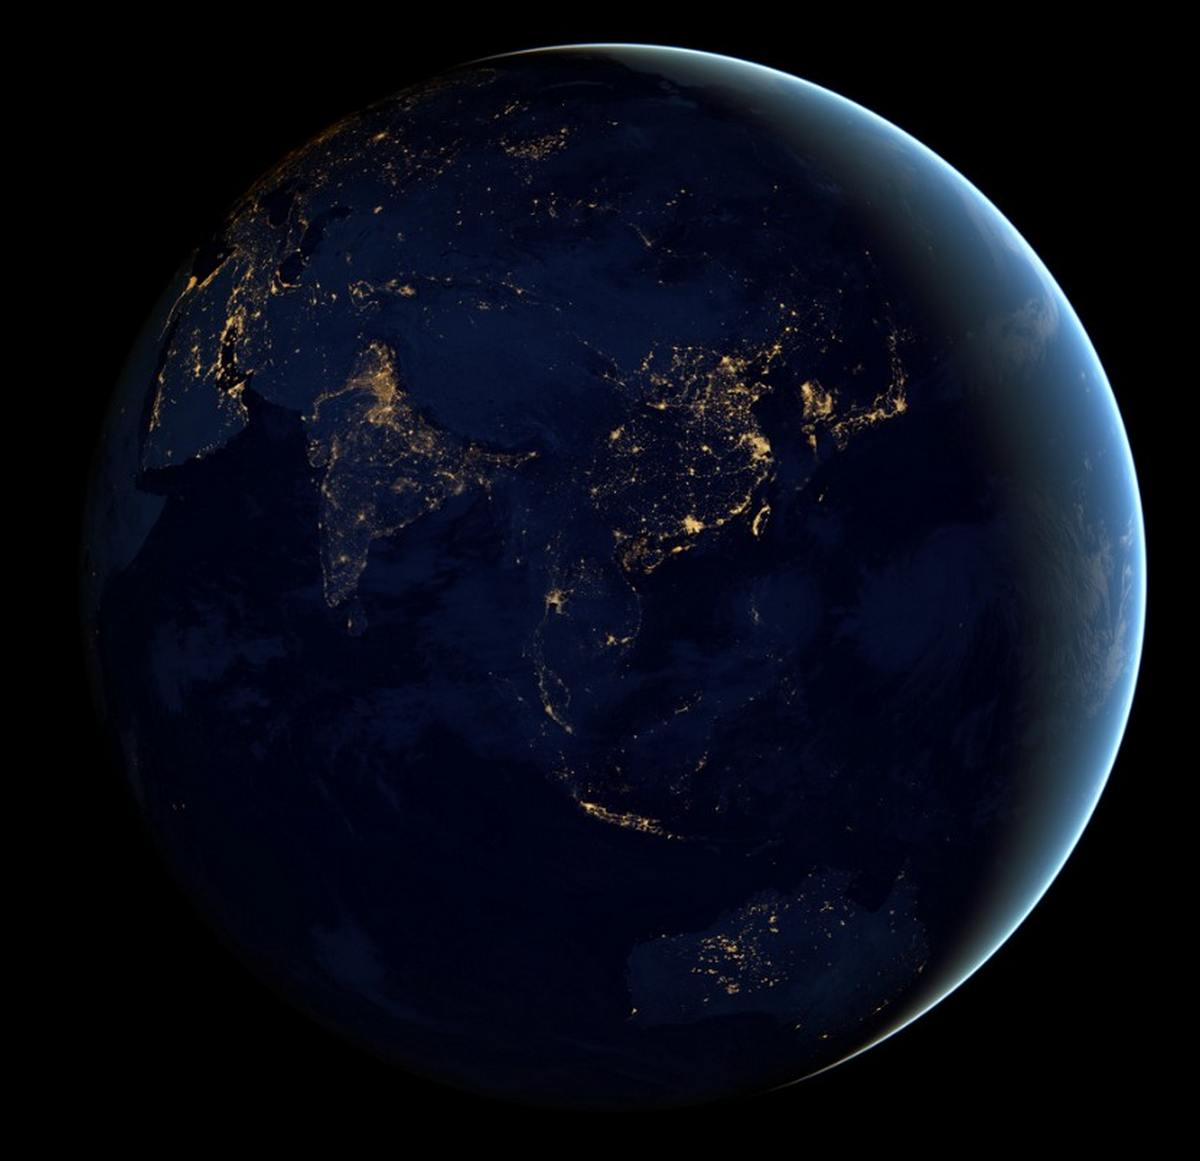 updated 20190219, original image at: http://images.wordlesstech.com/wp-content/uploads/2012/12/The-Black-Marble-Earth-at-Night-2012-1-640x619.jpg